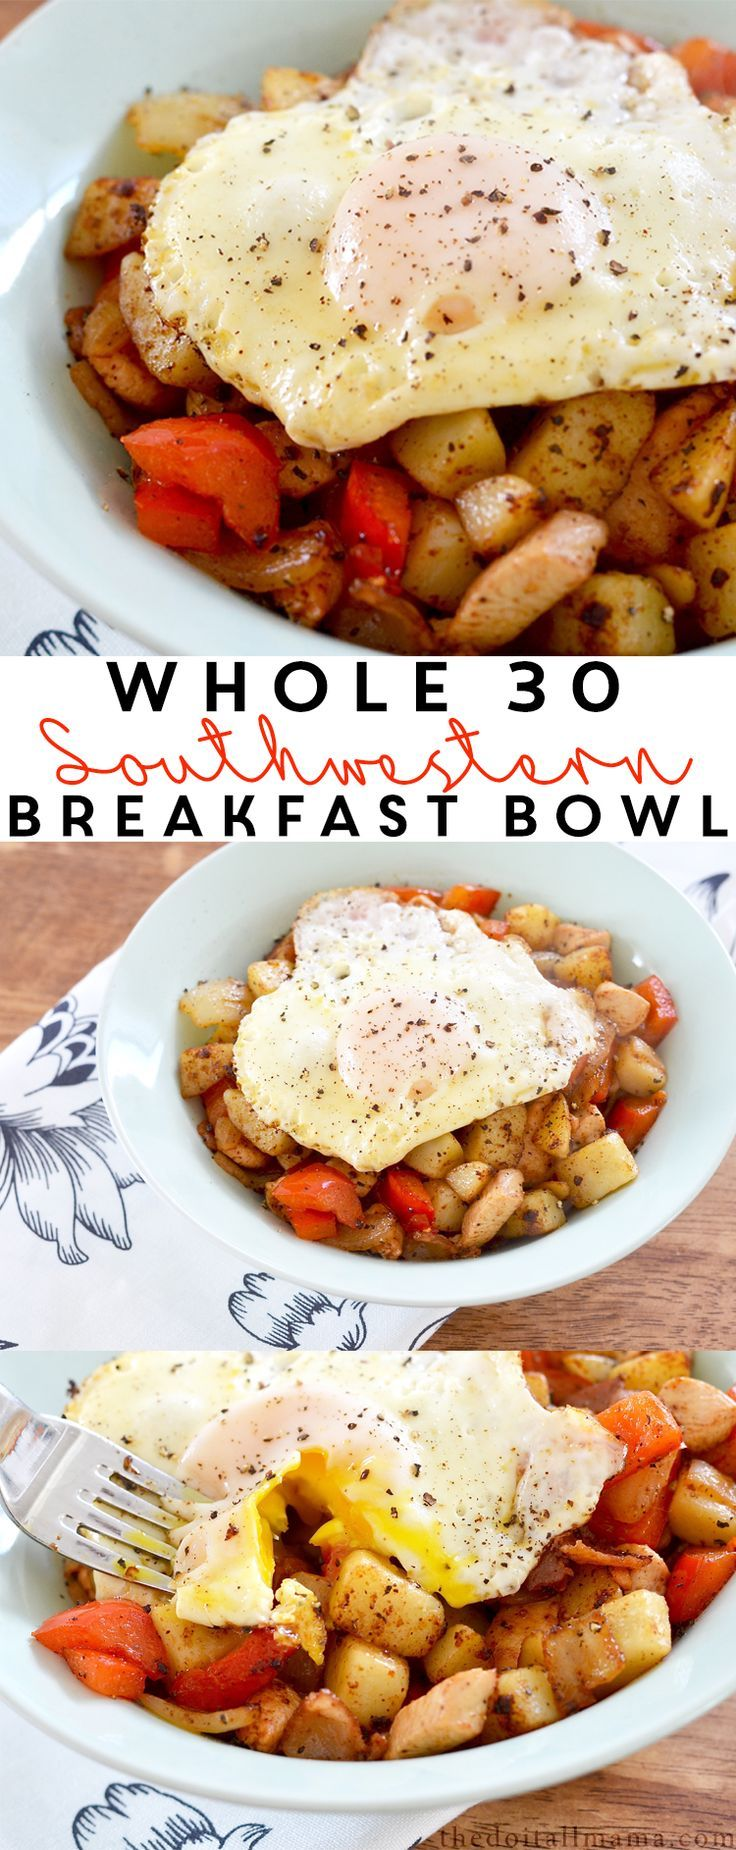 Healthy food doesn't have to be boring! Give this Whole 30 Friendly Southwestern Breakfast Bowl a try and start your day off with some kick.ebay store